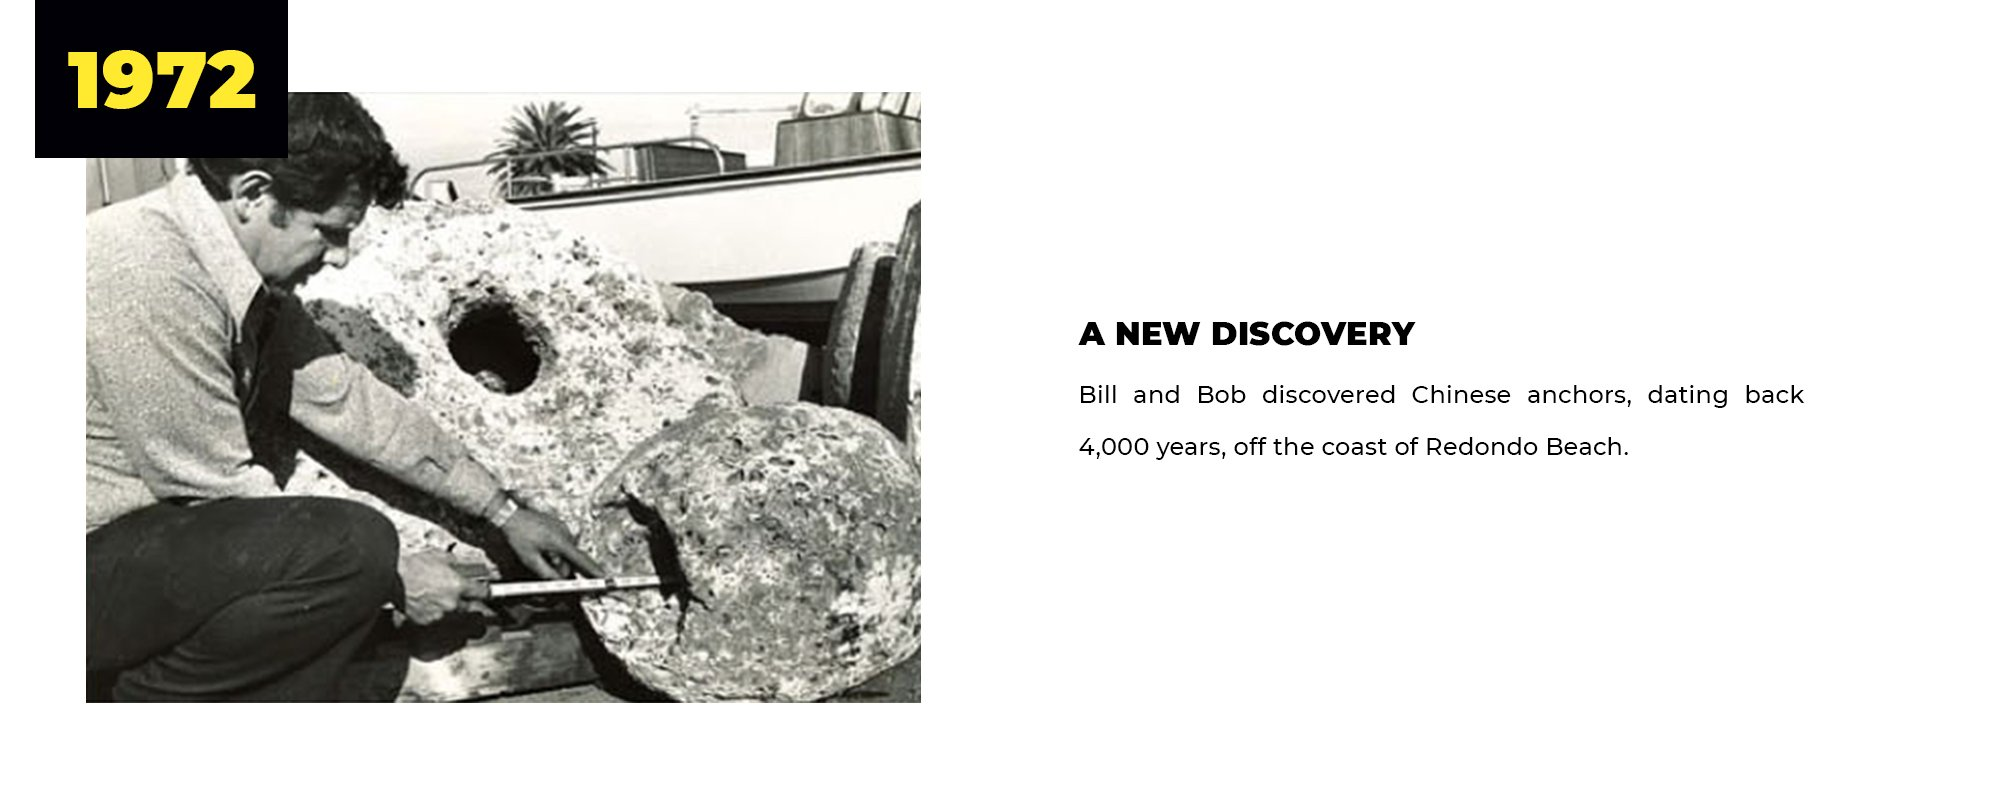 1972 | A New Discovery | Bill and Bob discovered Chinese anchors, dating back 4,000 years, off the coast of Redondo Beach.